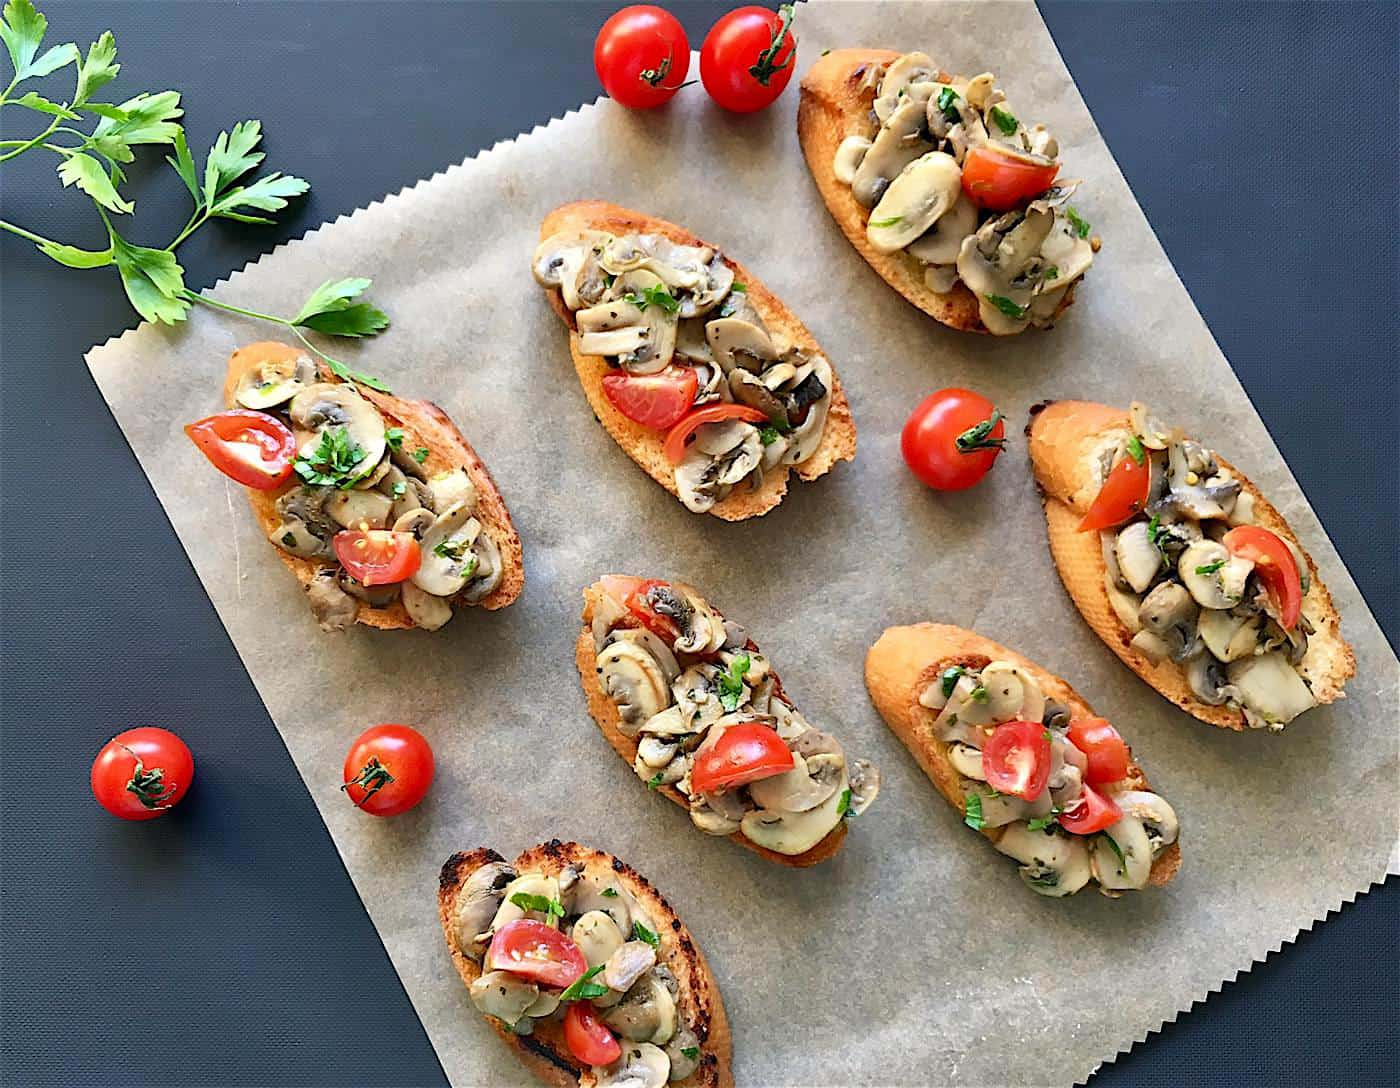 Photo of Bruschetta with Mushrooms and Fresh Cherry Tomatoes